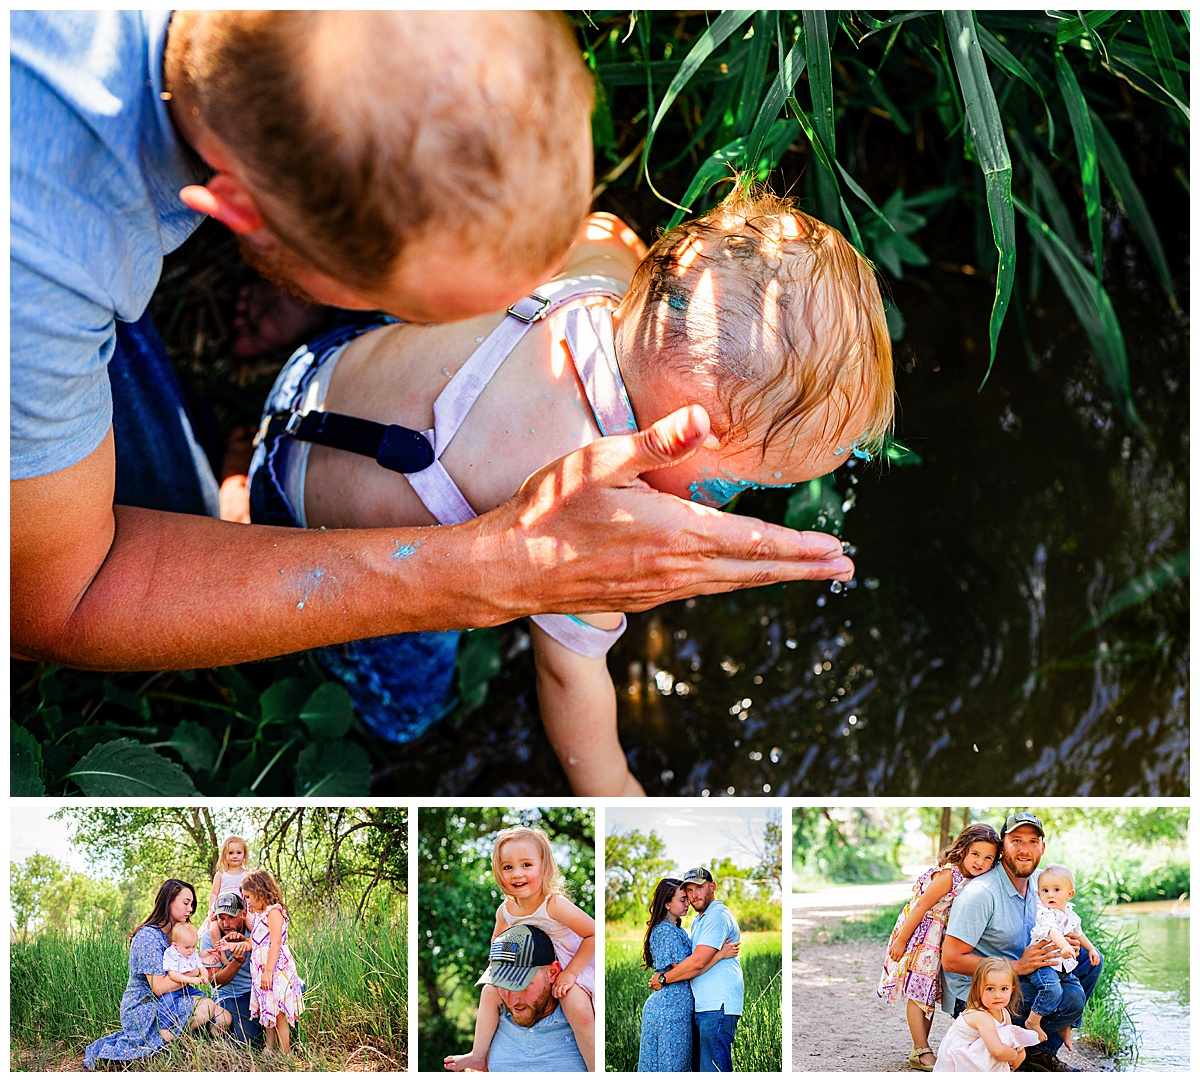 Summer Photos during a family session at the Creek in Colorado